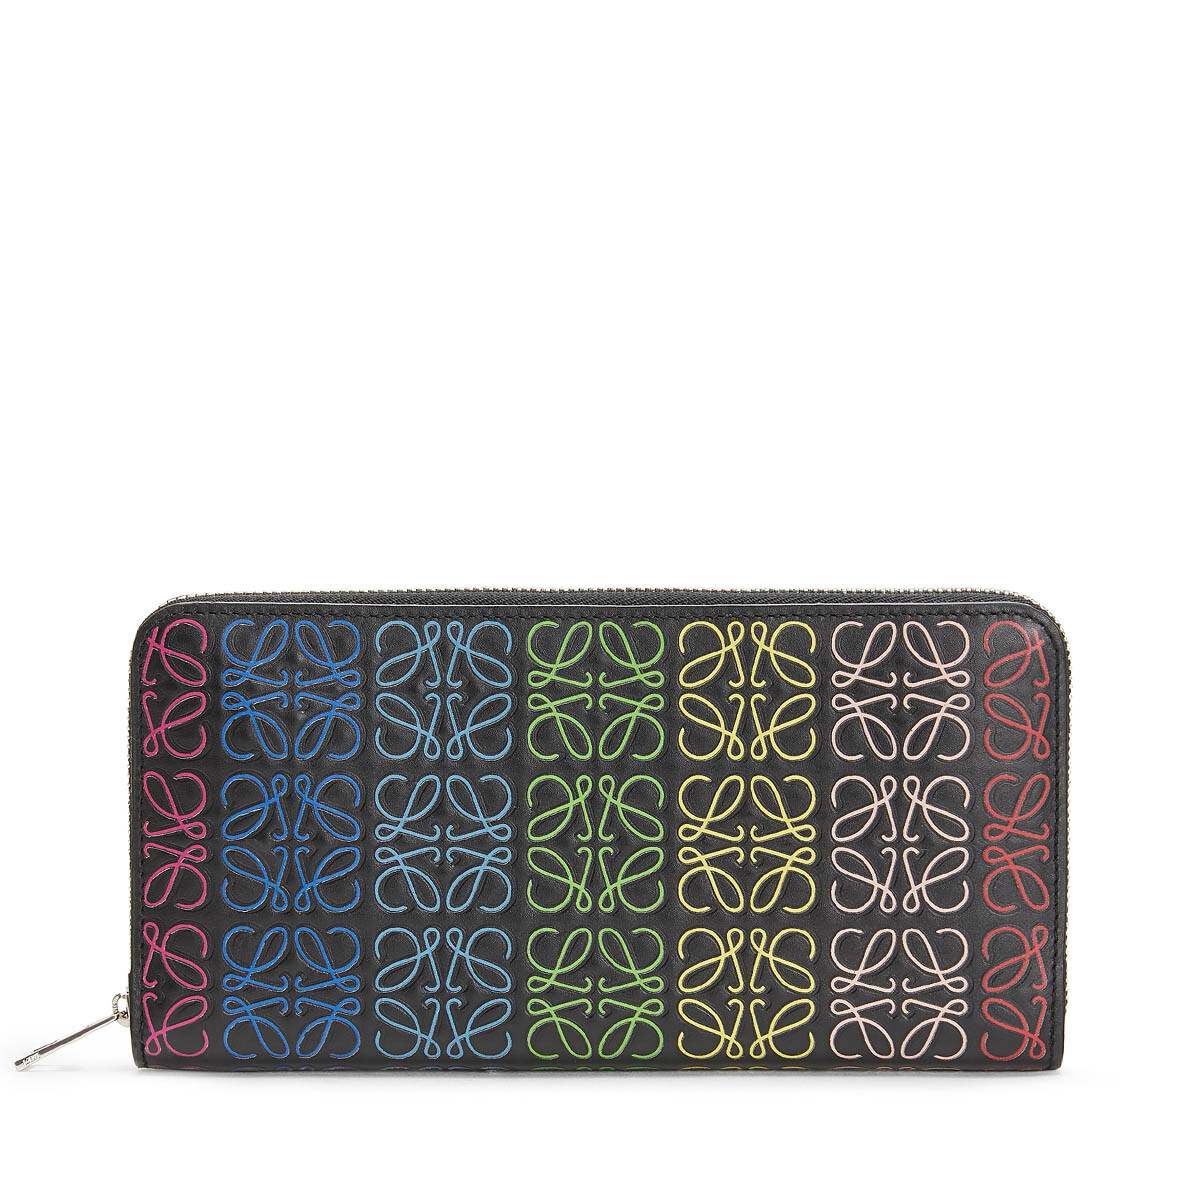 LOEWE Repeat Zip Around Wallet Black/Multicolor front